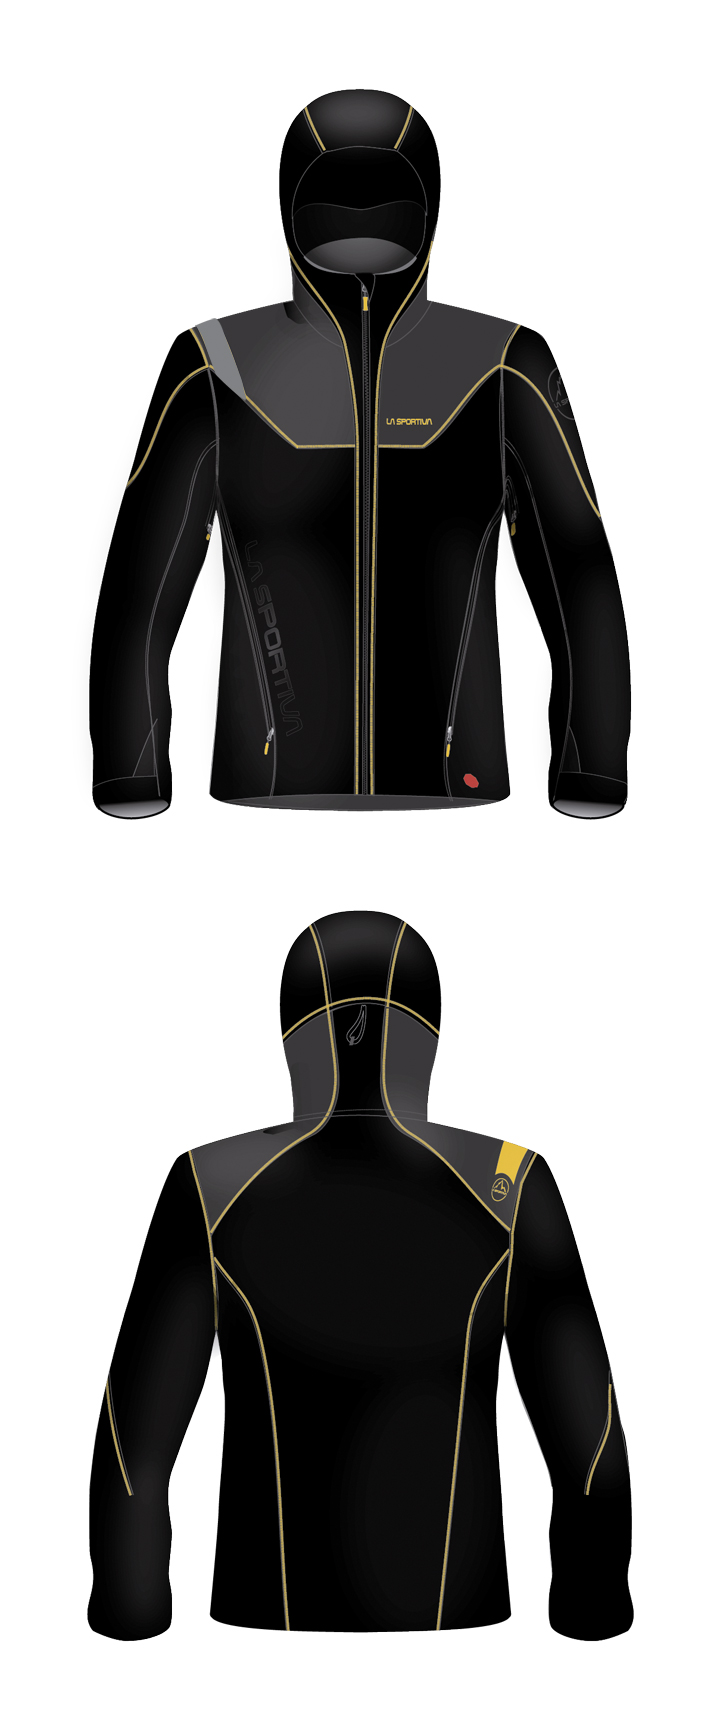 La Sportiva Adjuster Jacket